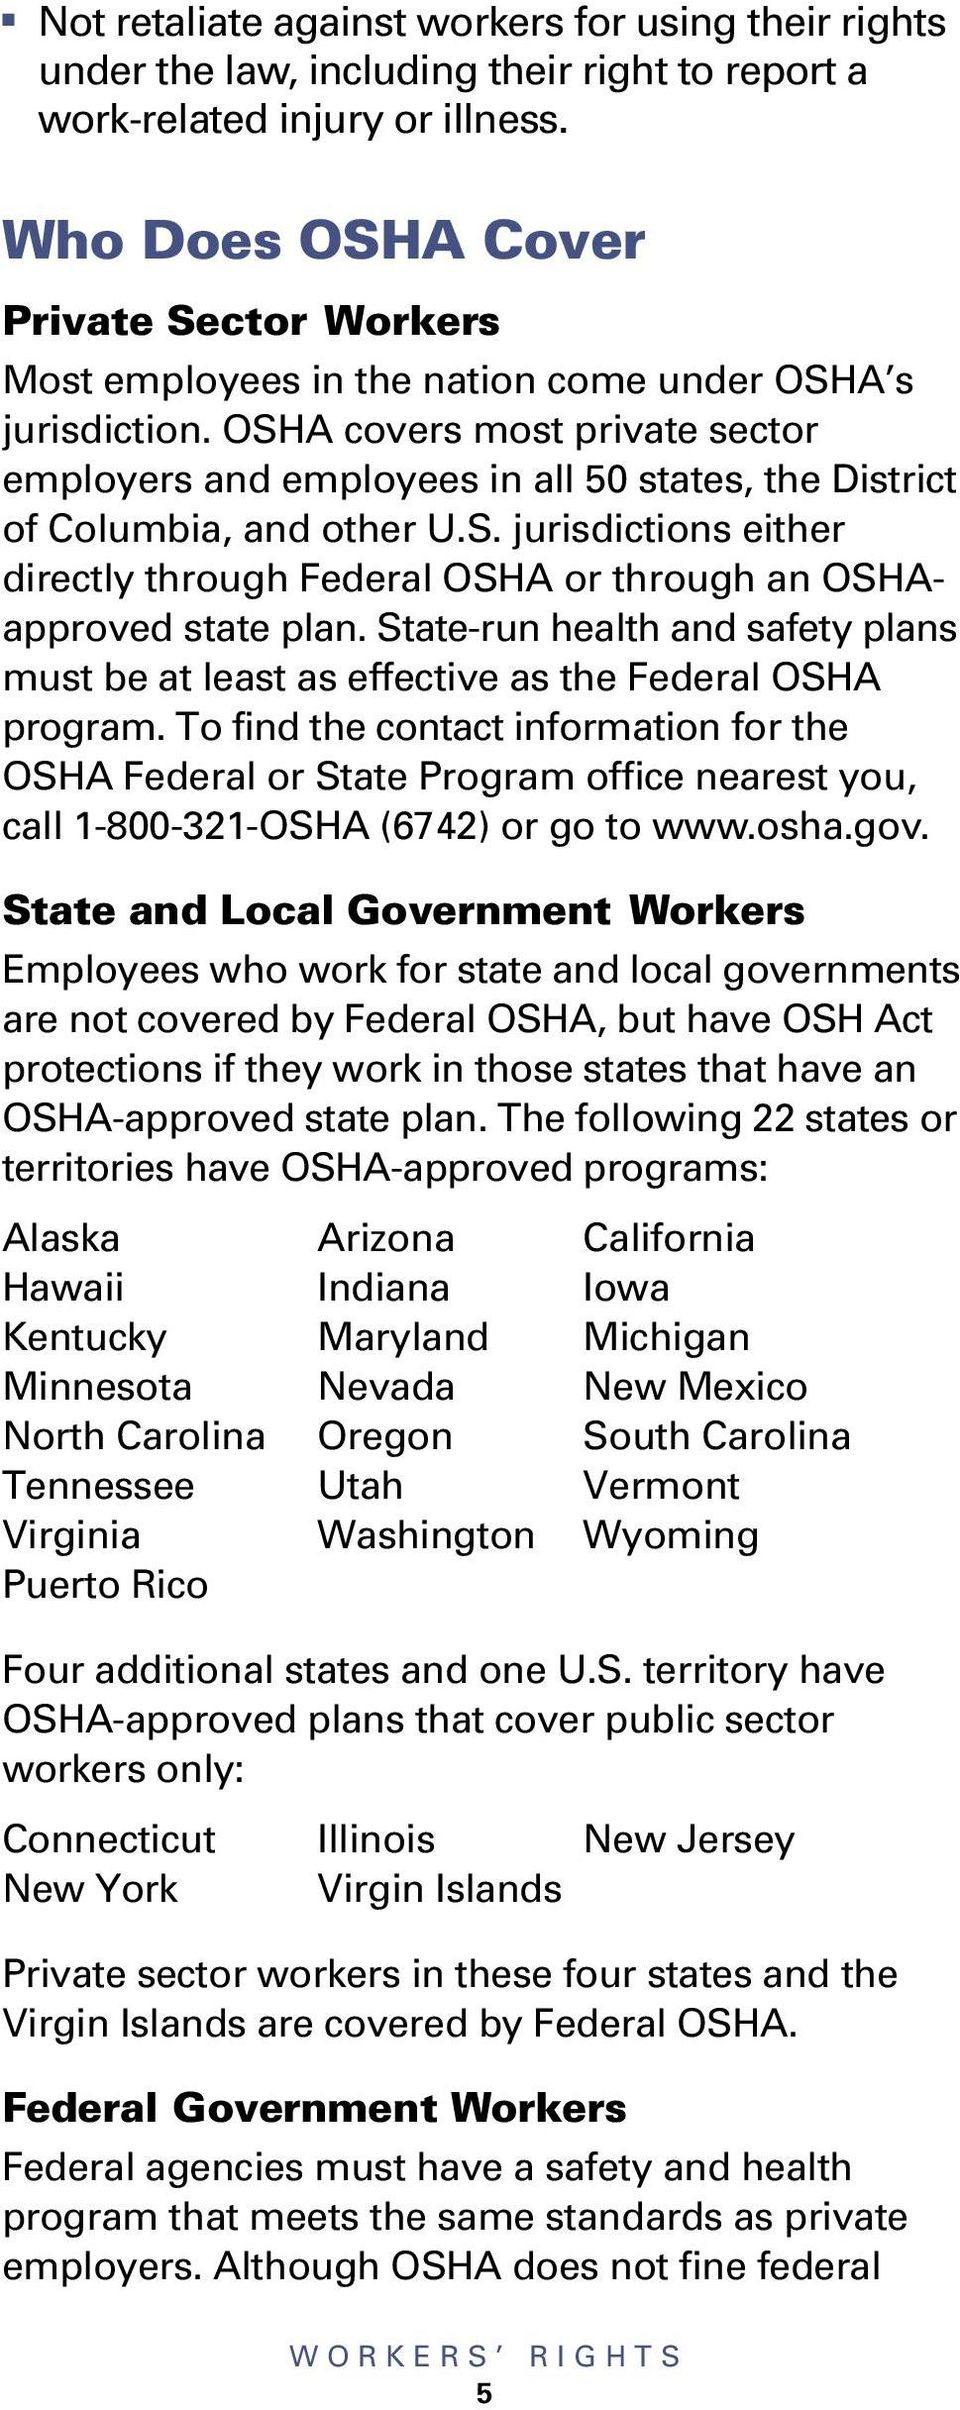 OSHA covers most private sector employers ad employees i all 50 states, the District of Columbia, ad other U.S. jurisdictios either directly through Federal OSHA or through a OSHAapproved state pla.